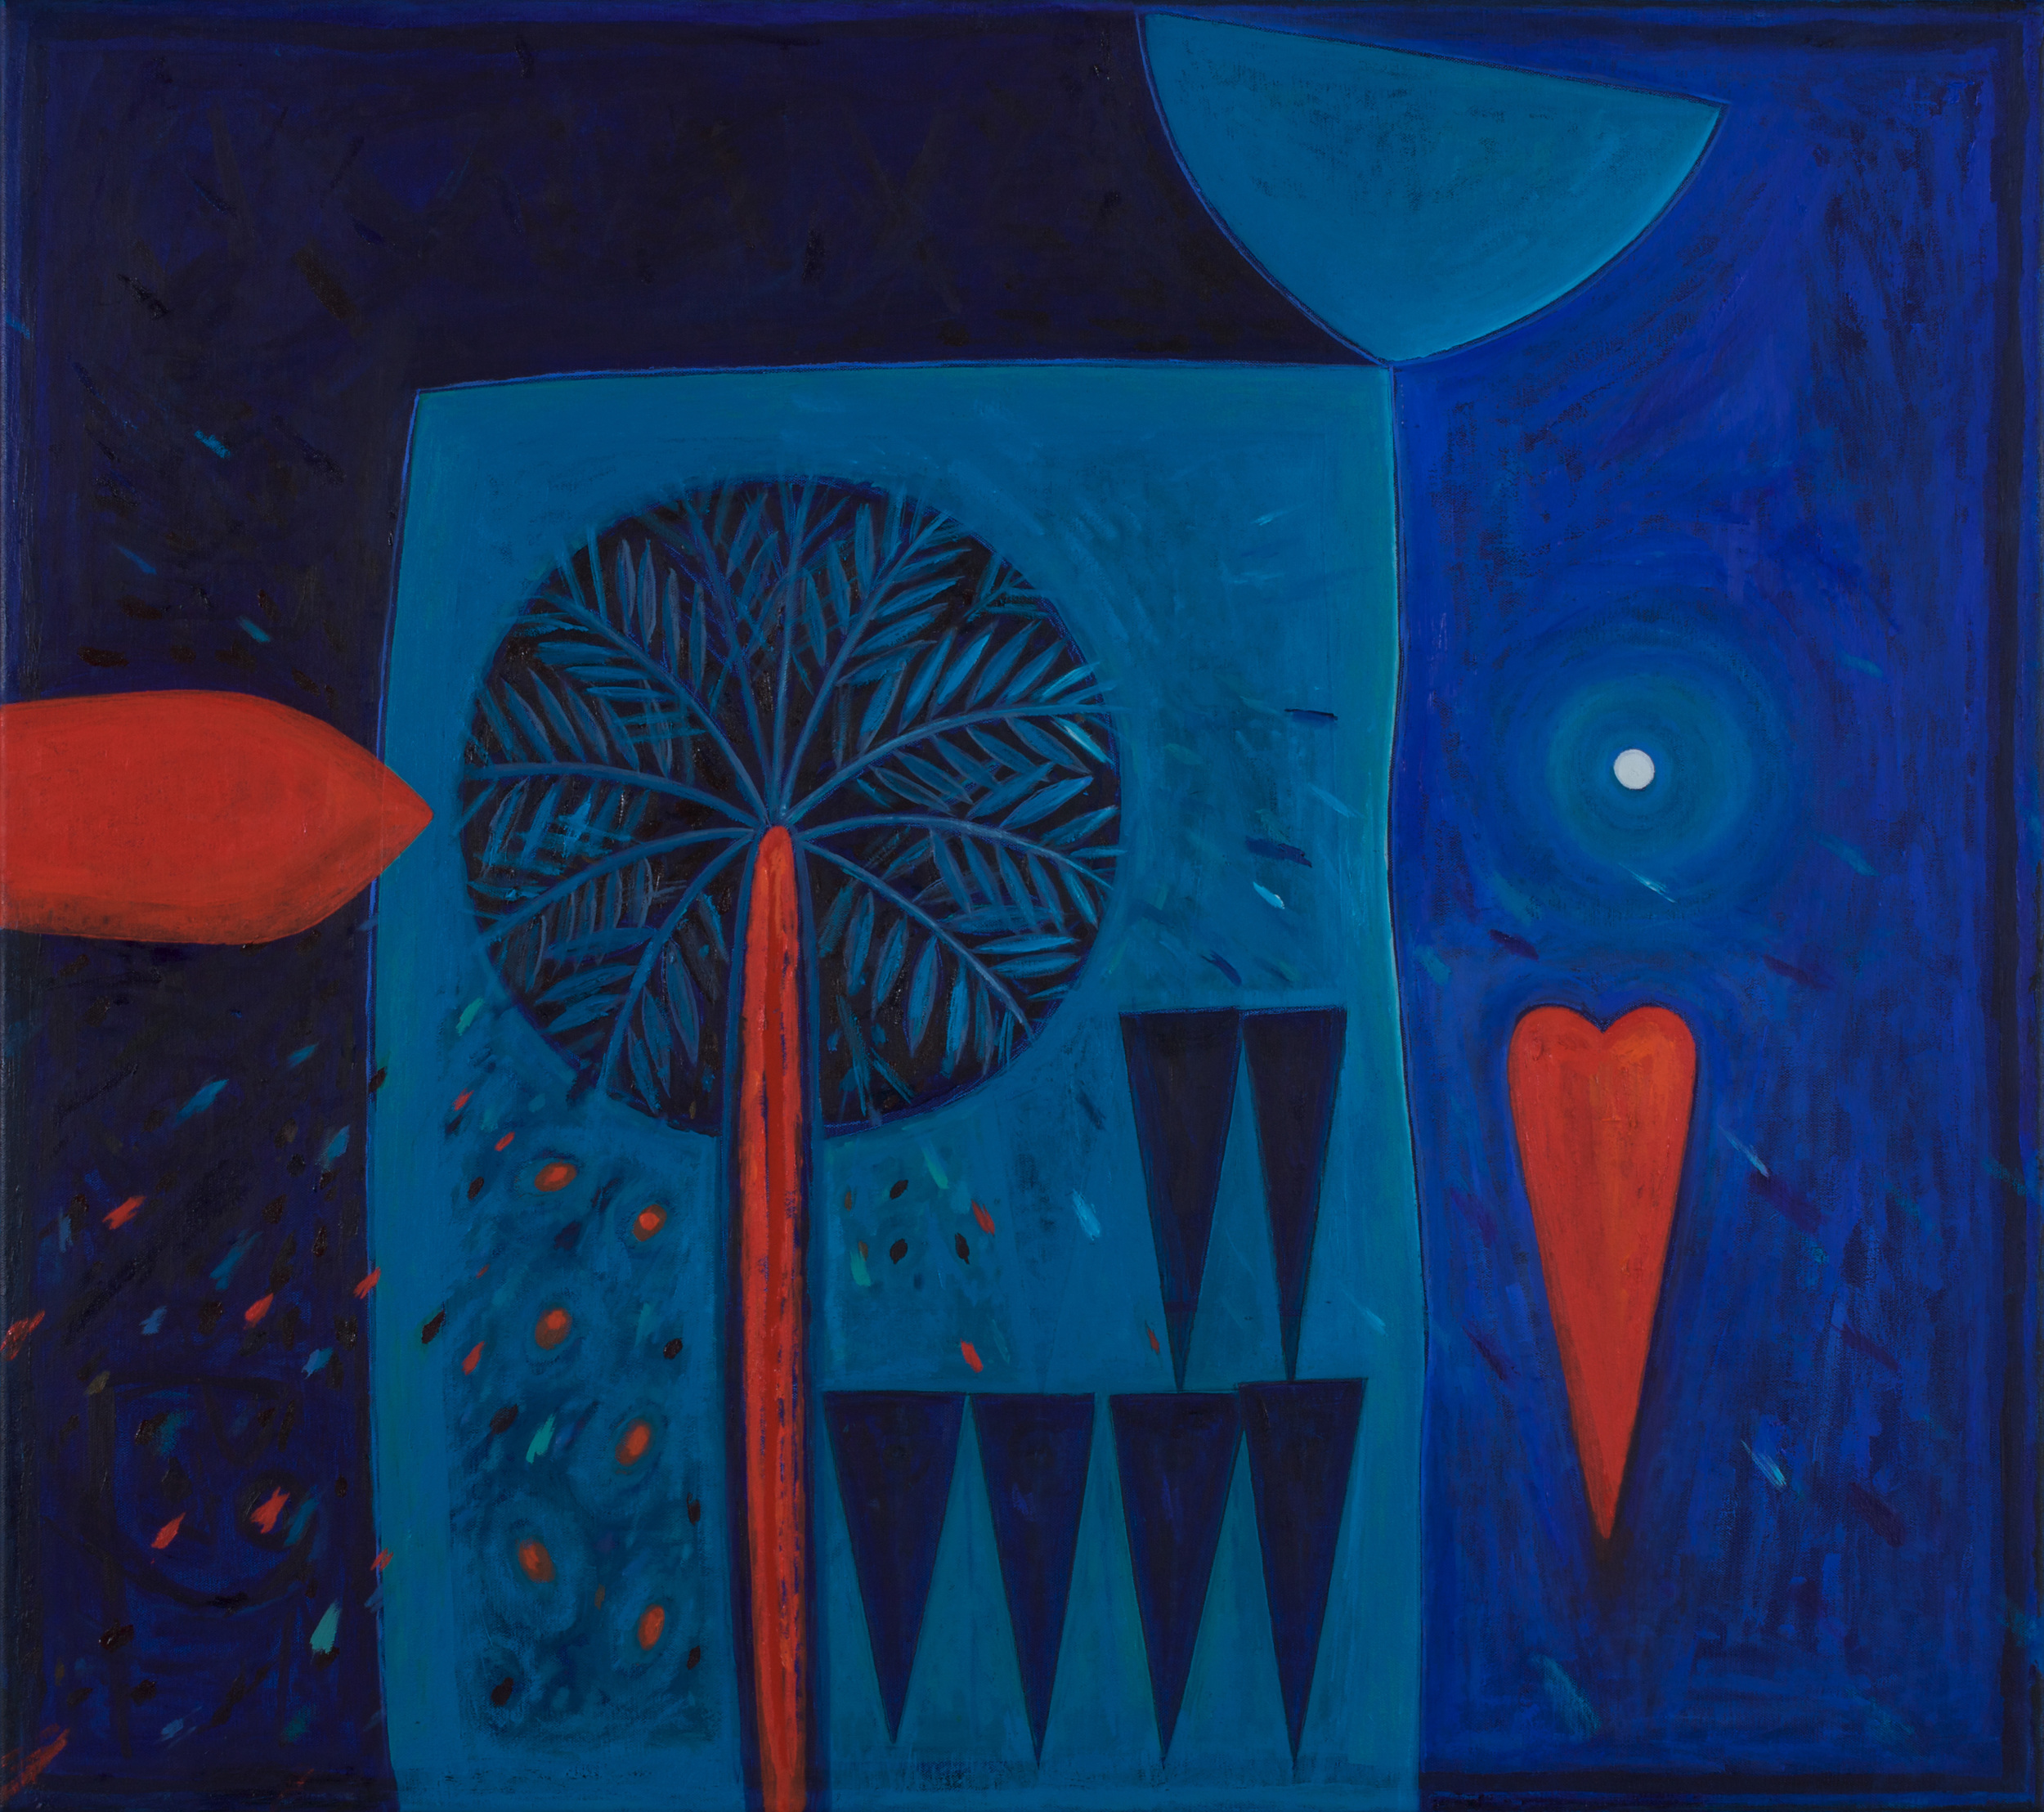 Ishtar  Kites and Shattered Dreams  Oil on canvas 80x90cm 2008  Hussain Ali Harba Collection  Italy